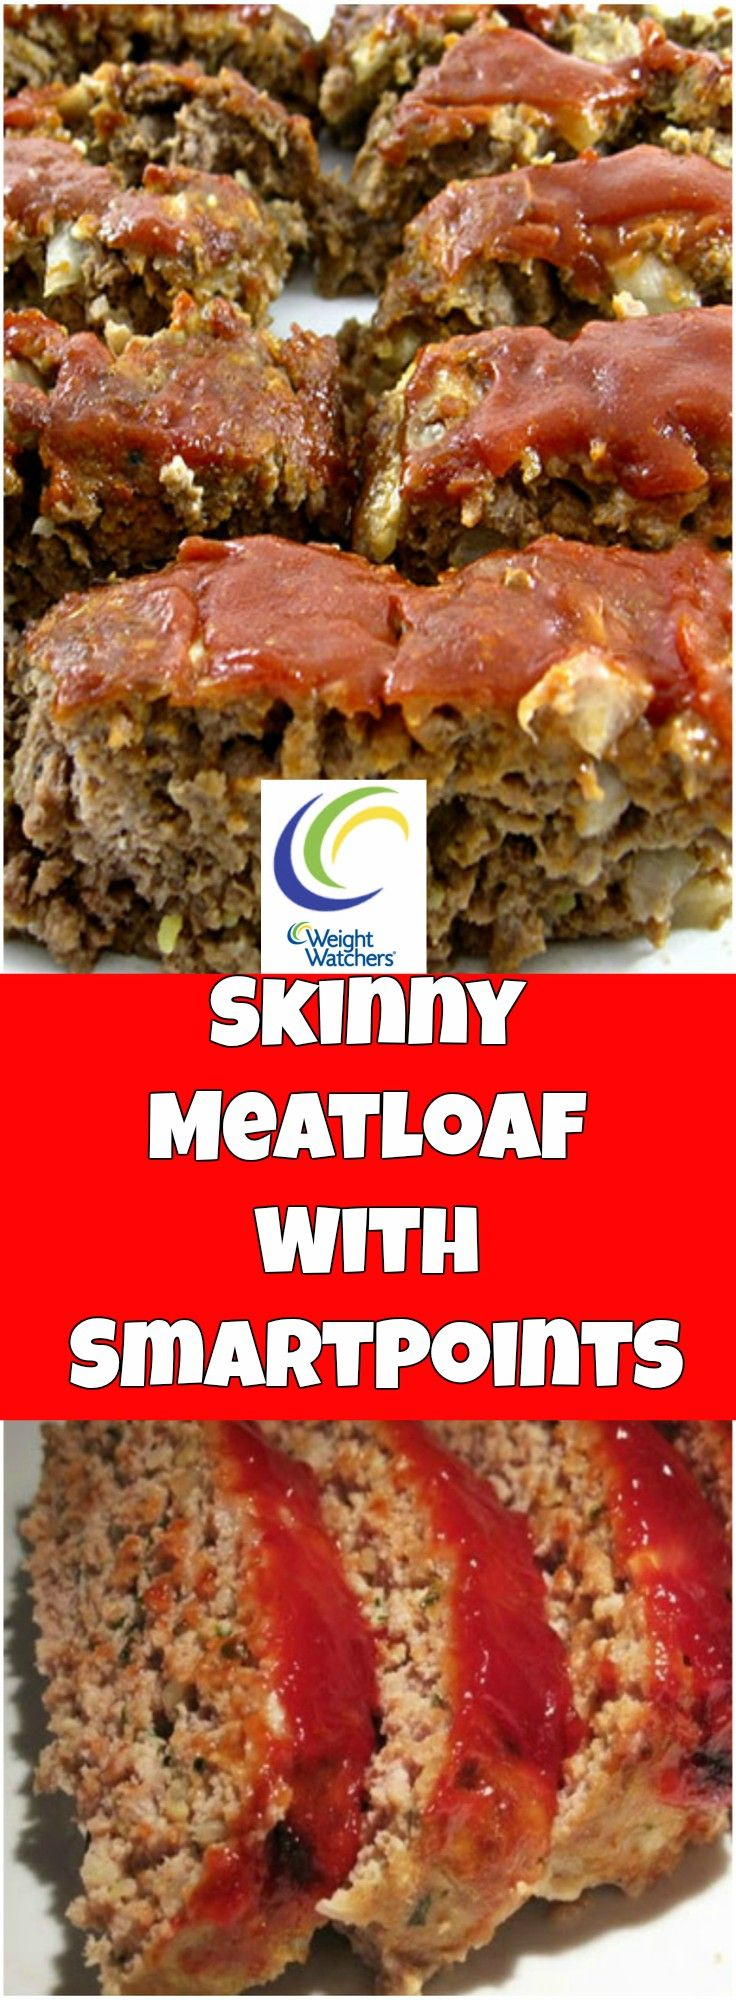 Skinny Meatloaf 6 Weight Watchers SmartPoints (Weight Watchers Beef Recipes)